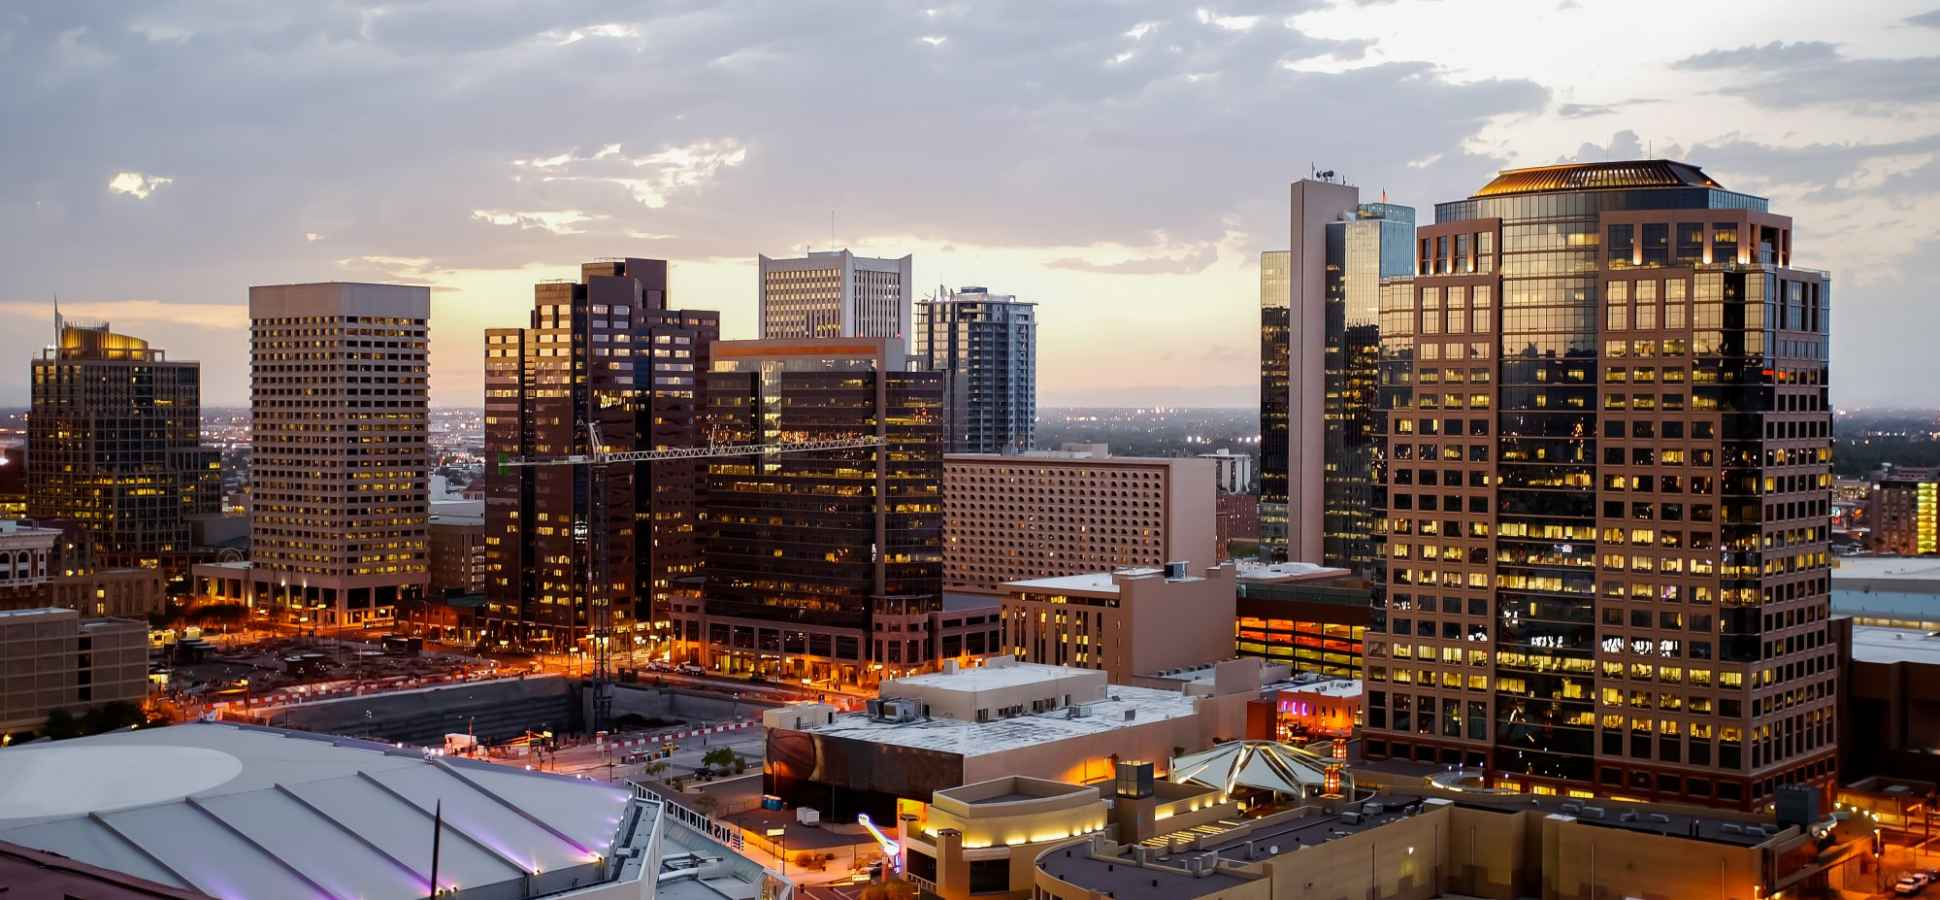 As the Cost of Living in Silicon Valley Explodes, Startups Look to Phoenix